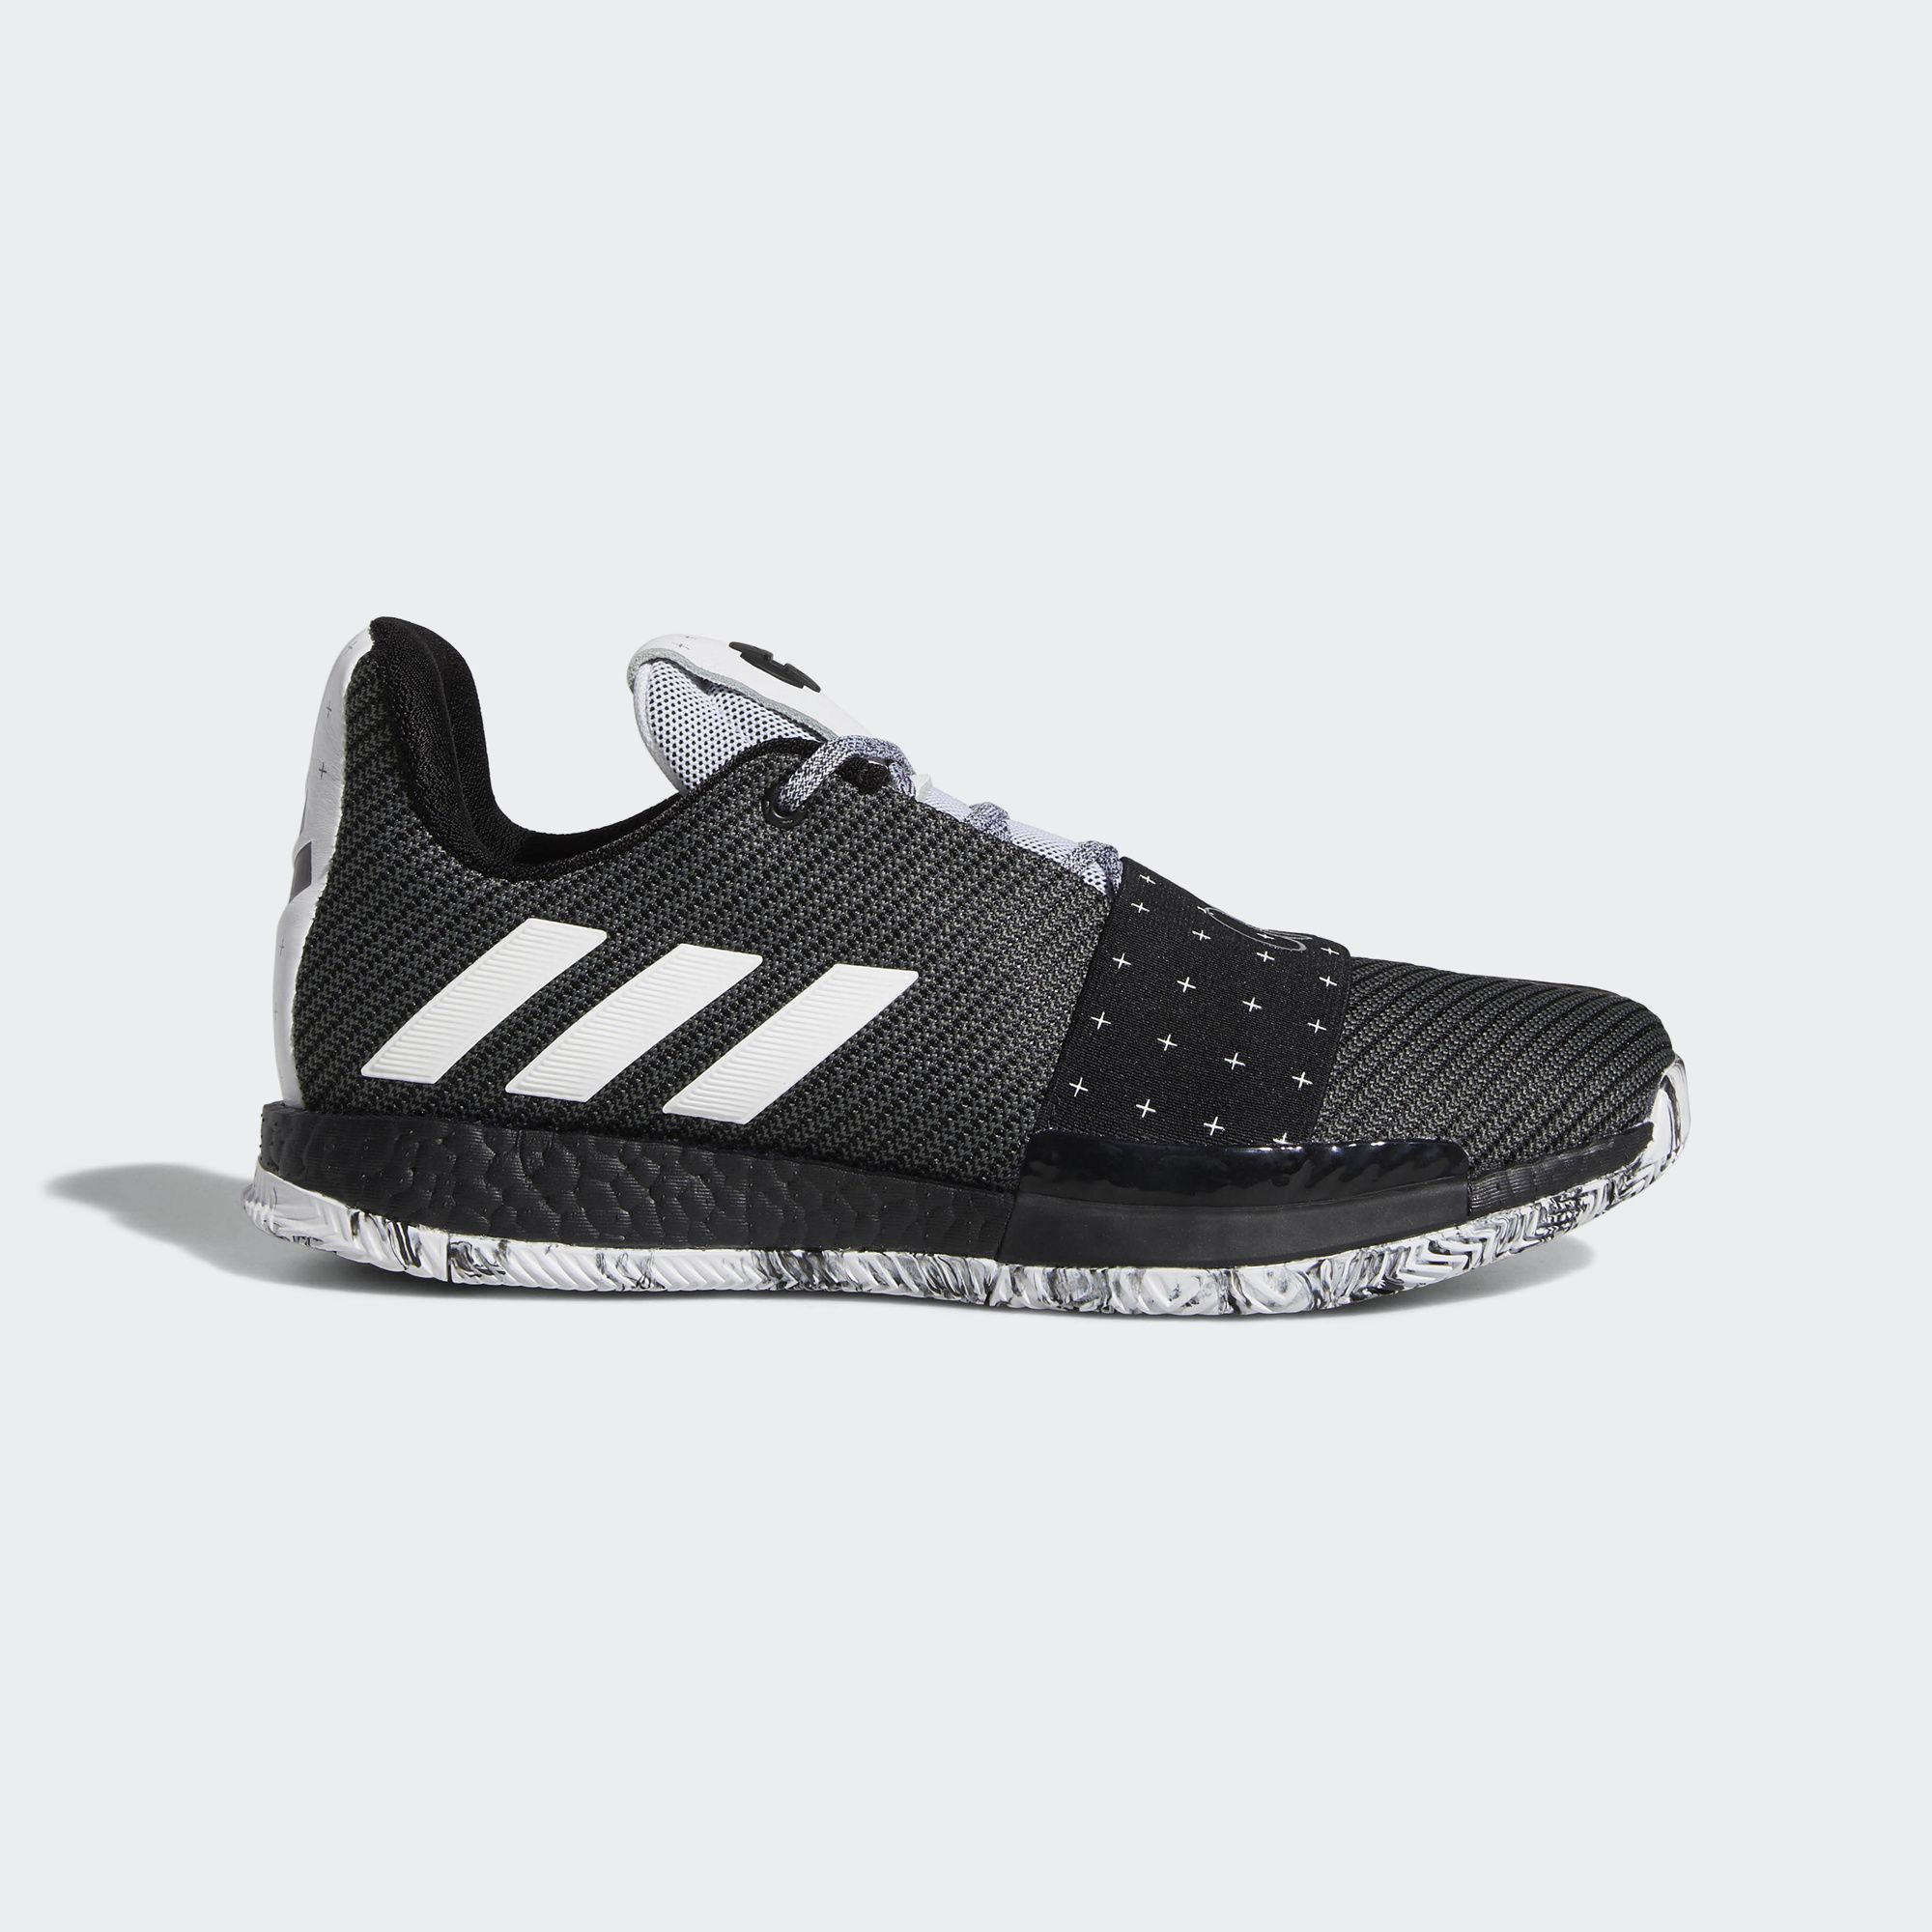 ddacd14cbc3 James Harden s adidas Harden Vol 3 Release Date is Official ...